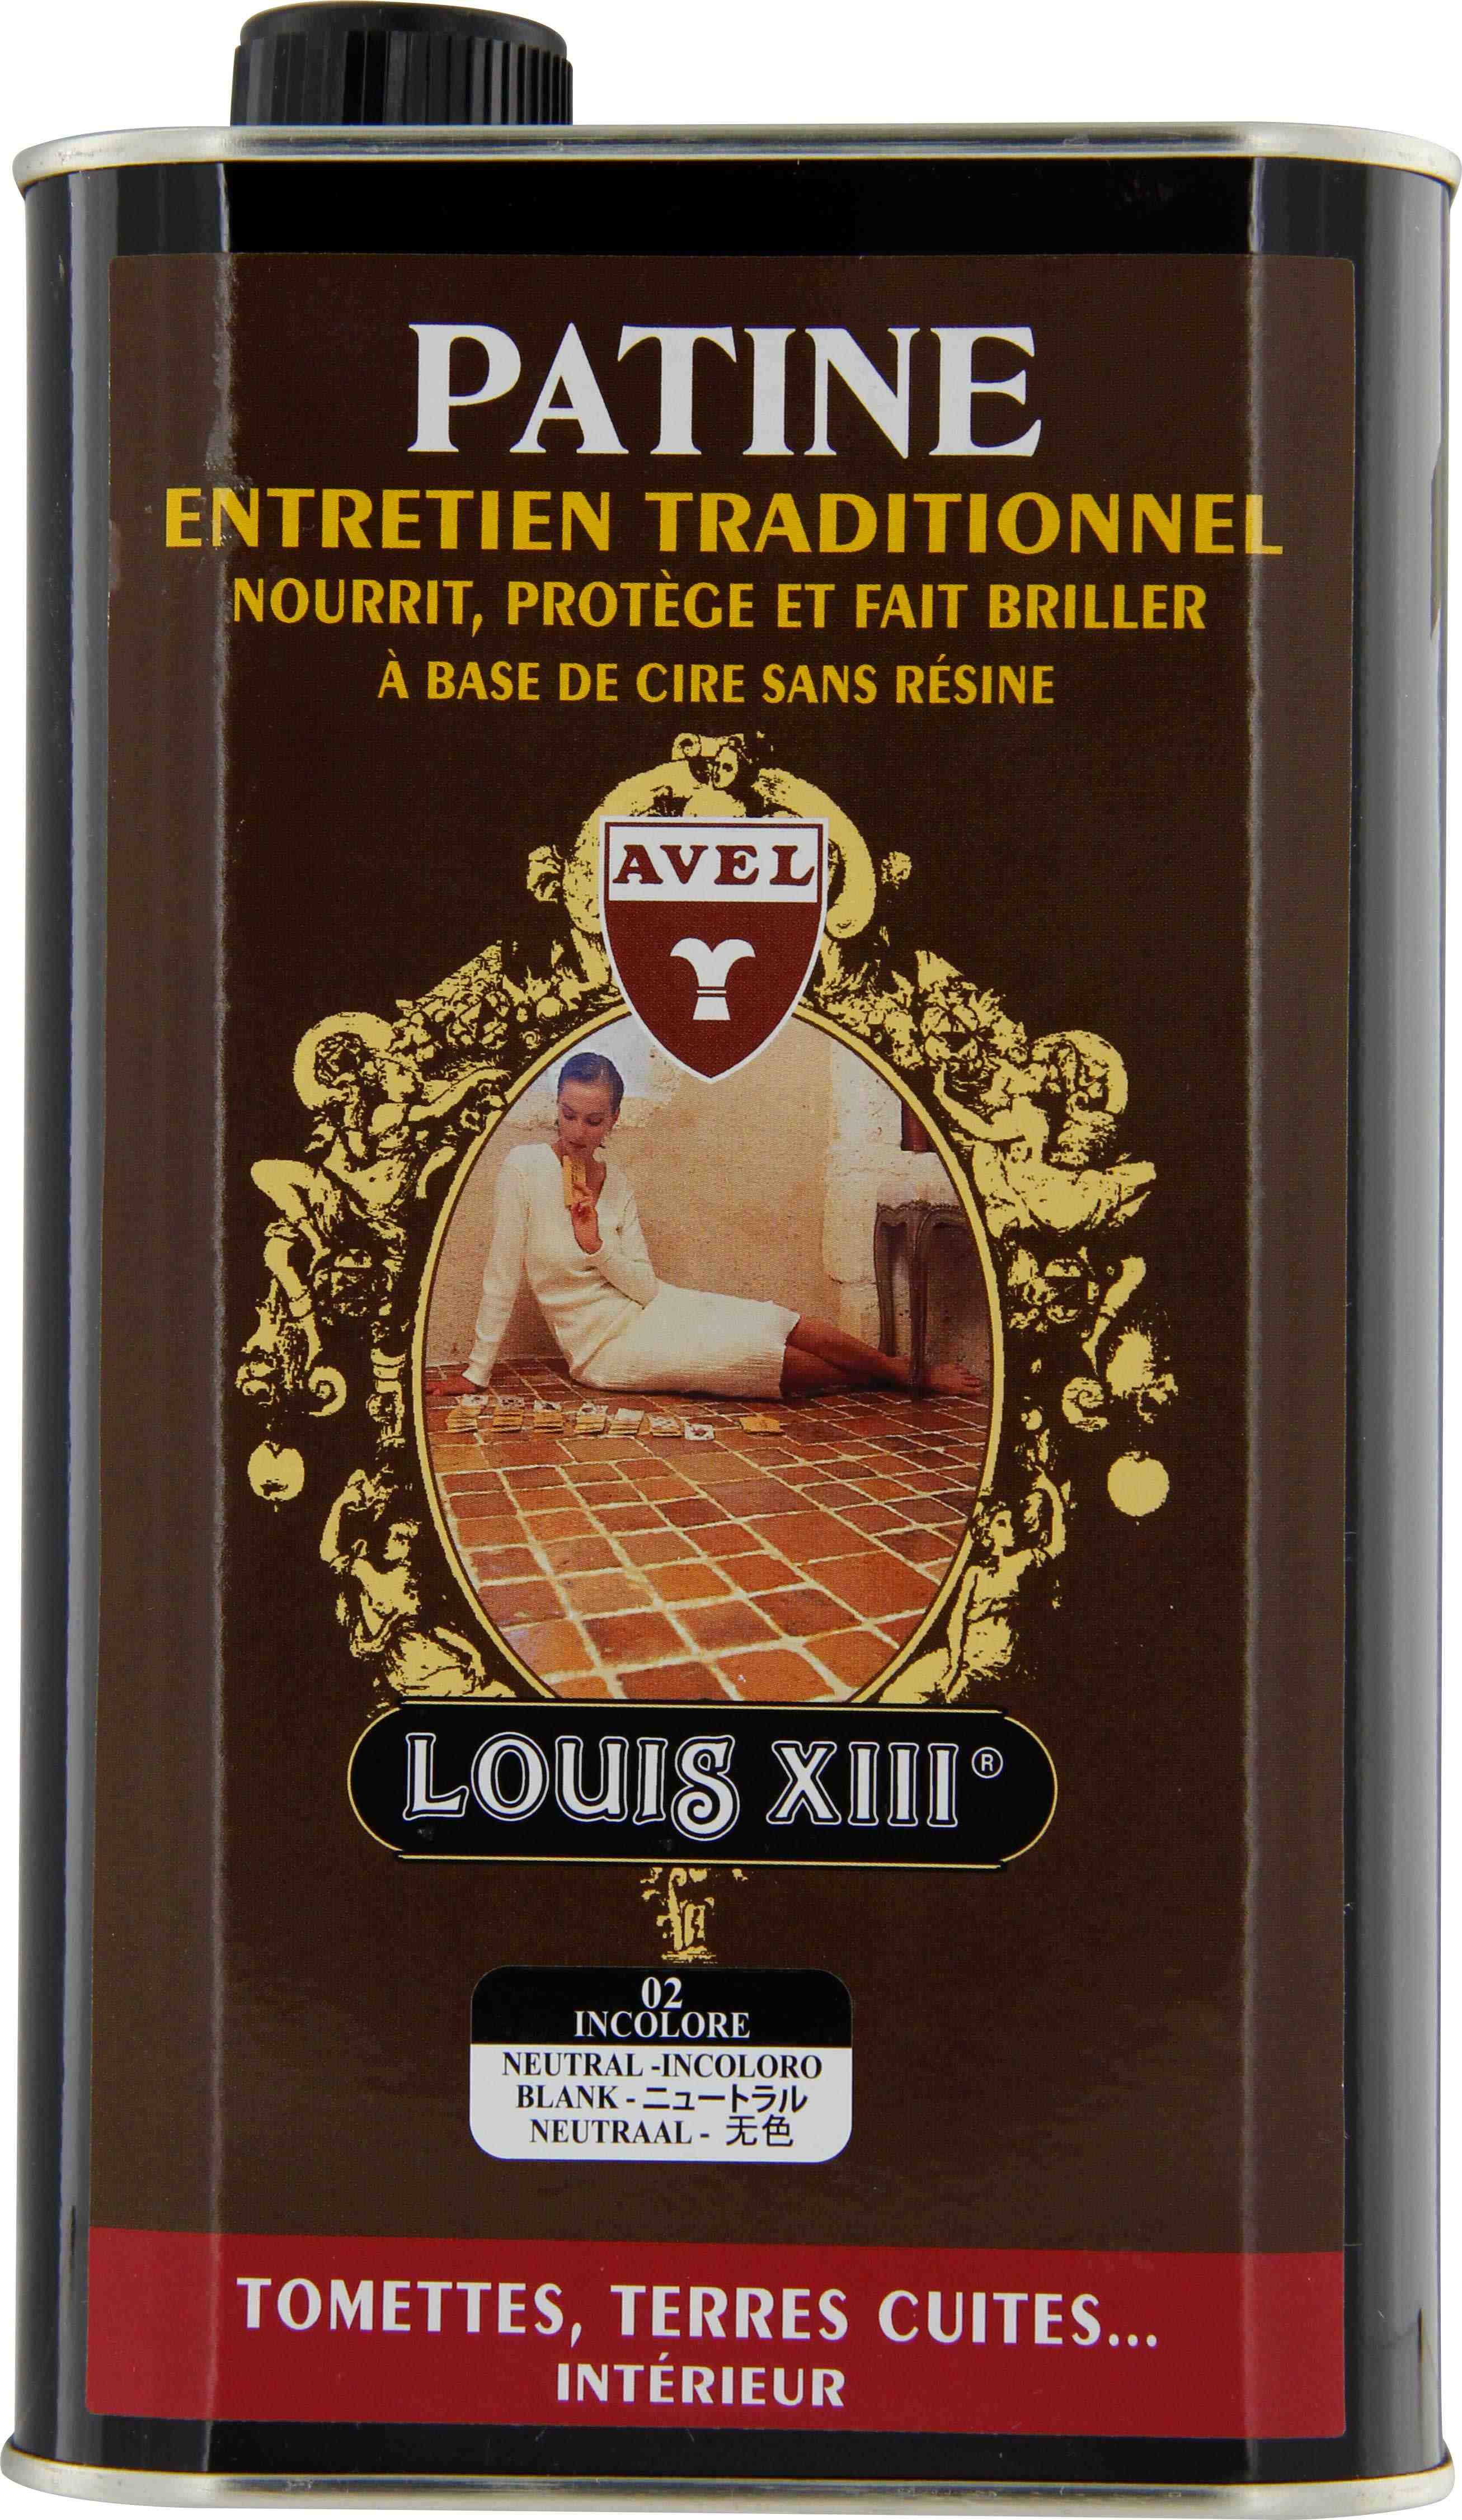 Cire tomette-terre cuite patine Avel Louis XIII